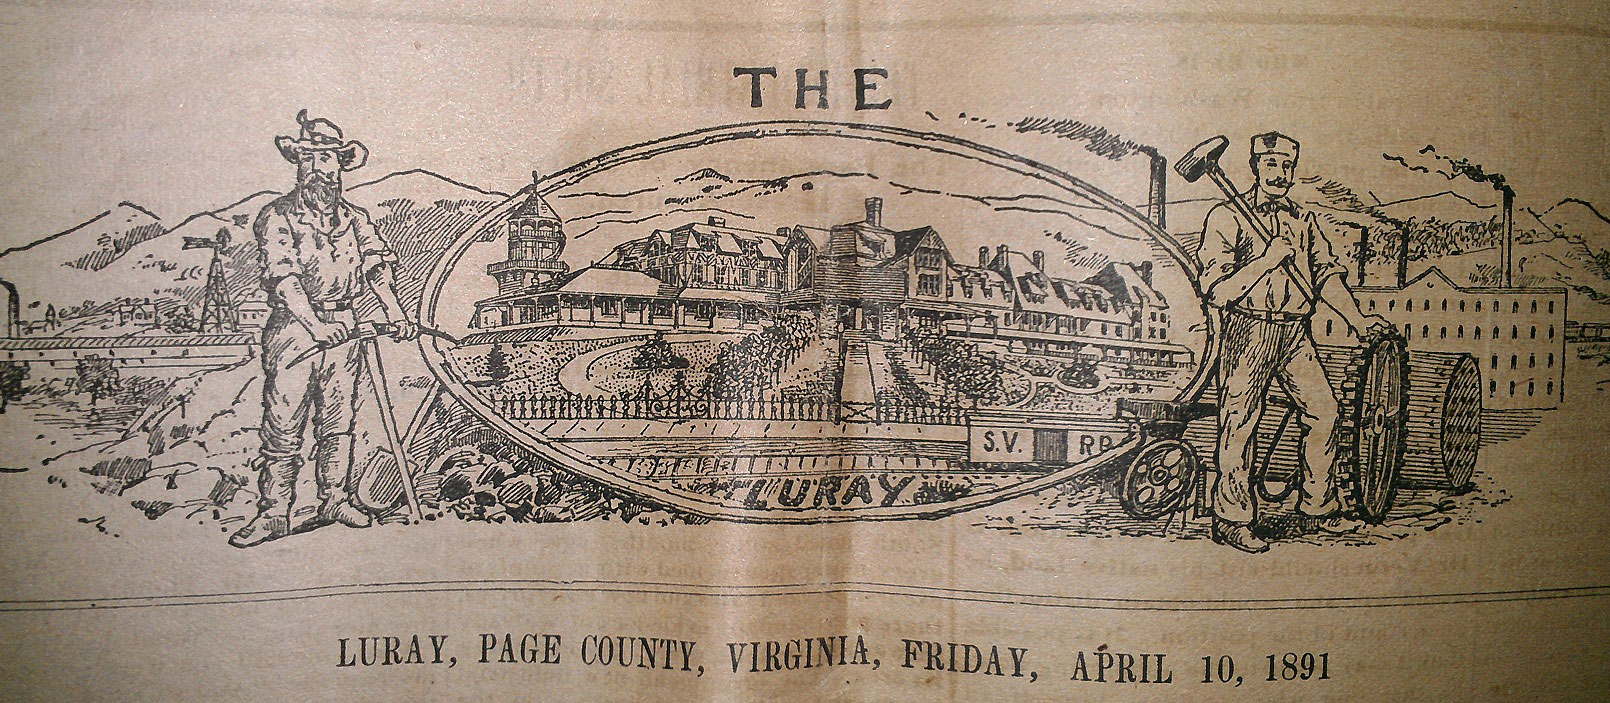 VNP Acquires Pages and Pages of Page County Newspapers